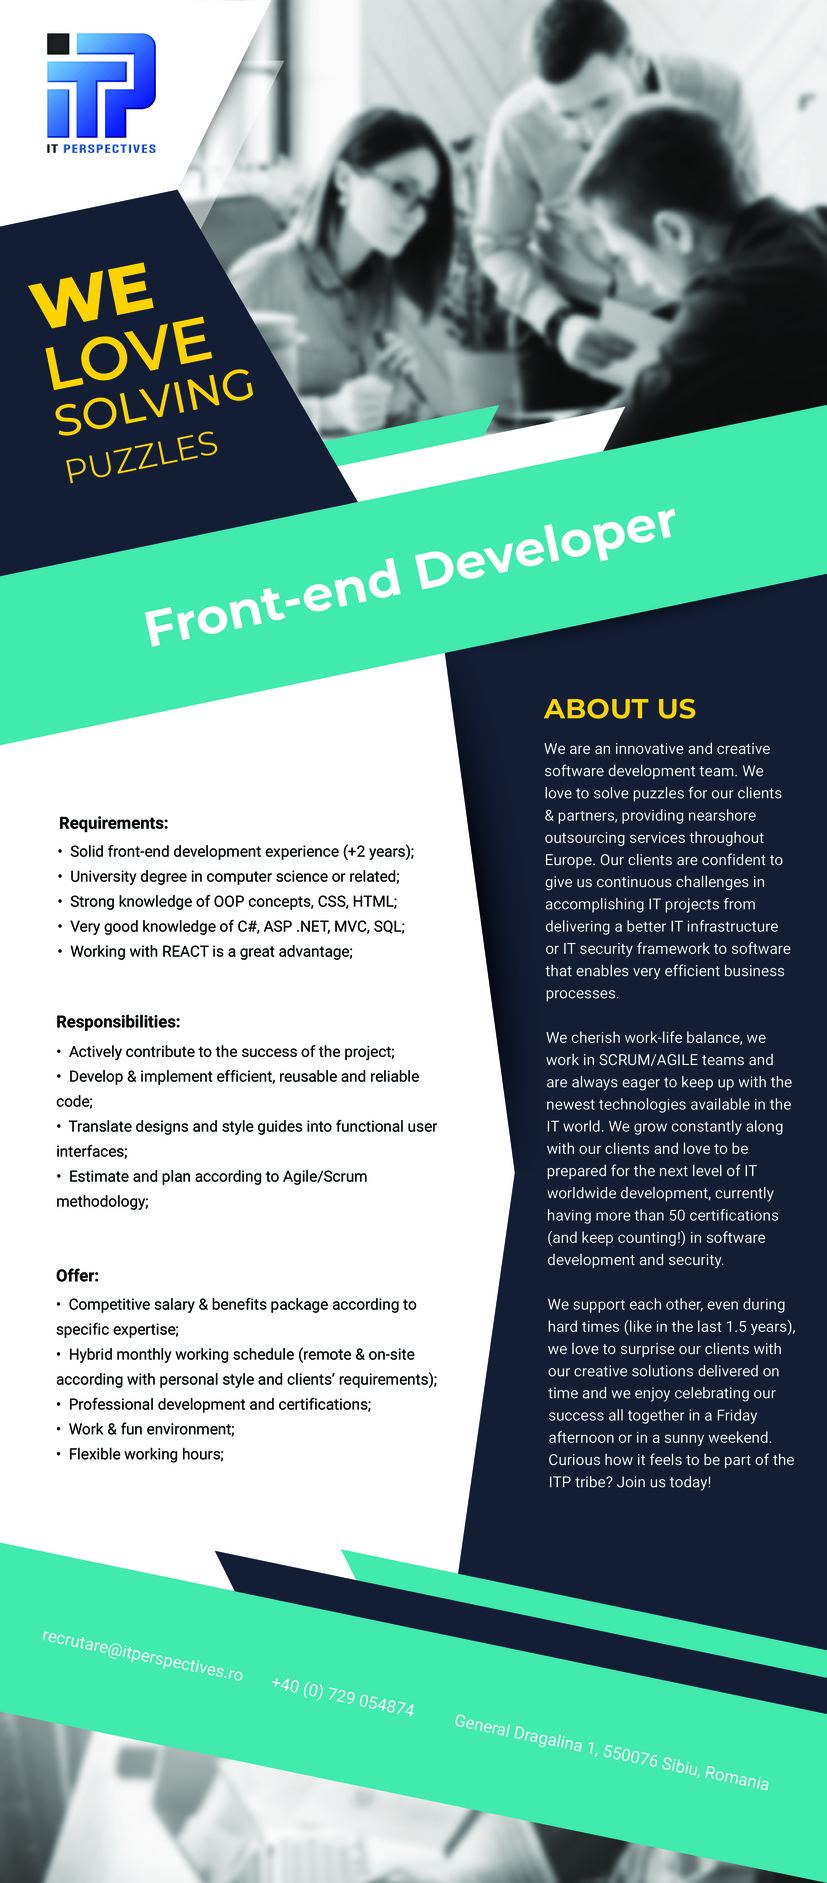 -Solid front-end development experience (+2 years); -University degree in computer science or related; -Strong knowledge of OOP concepts, CSS, HTML; -Good Javascript/Typescript programming skills; -Working with REACT is a great advantage; -Actively contribute to the success of the project; -Develop& implement efficient, reusable and reliable code; -Translate designs and style guides into functional user interfaces; -Estimate and plan according to Agile/Scrum methodology We are an innovative and creative software development team. We love to solve puzzles for our clients & partners, providing nearshore outsourcing services throughout Europe. Our clients are confident to give us continuous challenges in accomplishing IT projects from delivering a better IT infrastructure or IT security framework to software that enables very efficient business processes. We cherish work-life balance, we work in SCRUM/AGILE teams and are always eager to keep up with the newest technologies available in the IT world. We grow constantly along with our clients and love to be prepared for the next level of IT worldwide development, currently having more than 50 certifications (and keep counting!) in software development and security.   We support each other, even during hard times (like in the last 1.5 years),  we love to surprise our clients with our creative solutions delivered on time and we enjoy celebrating our success all together in a Friday afternoon or in a sunny weekend. Curious how it feels to be part of the ITP tribe? Join us today!